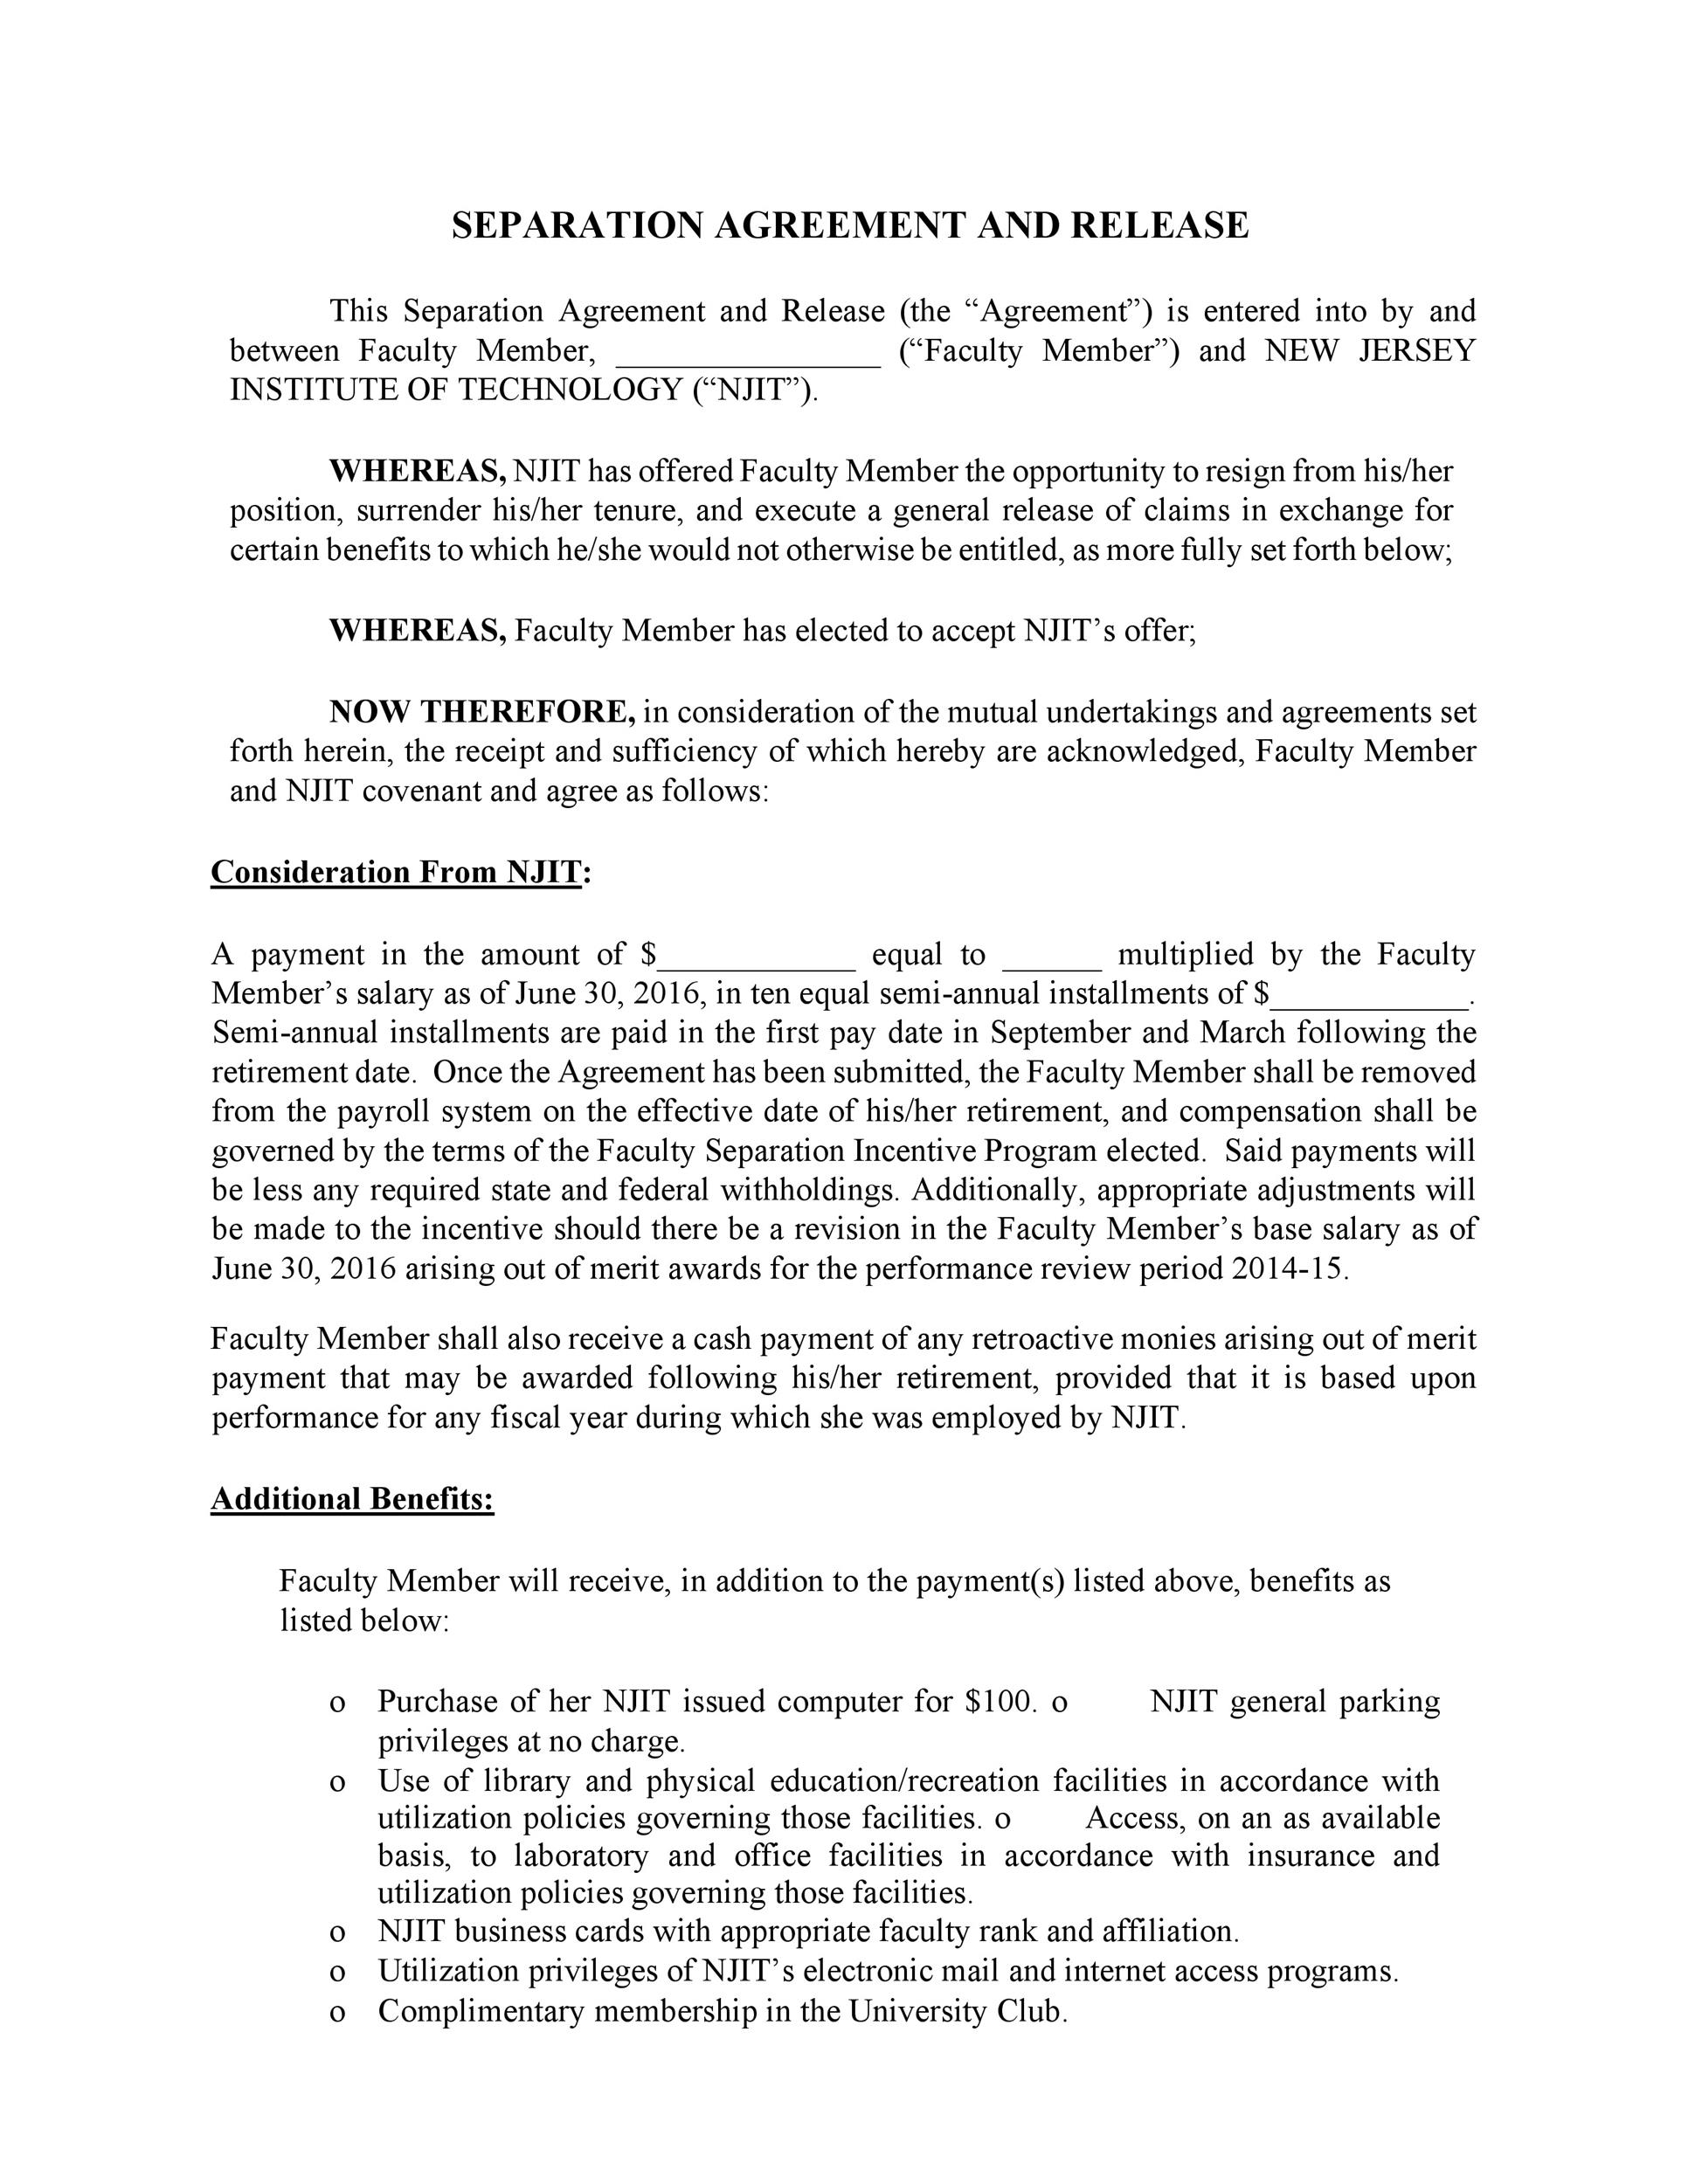 Free Separation Agreement Template 41